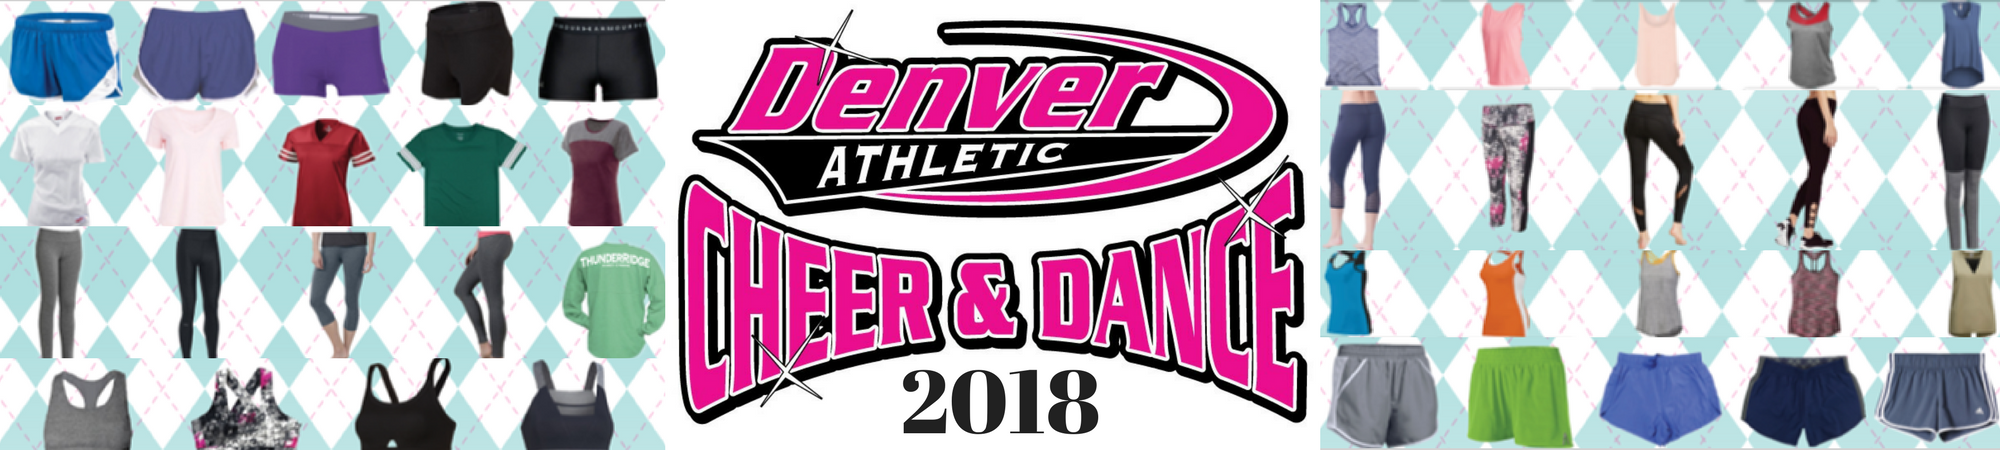 Cheer and Dance Denver Athletic team specials